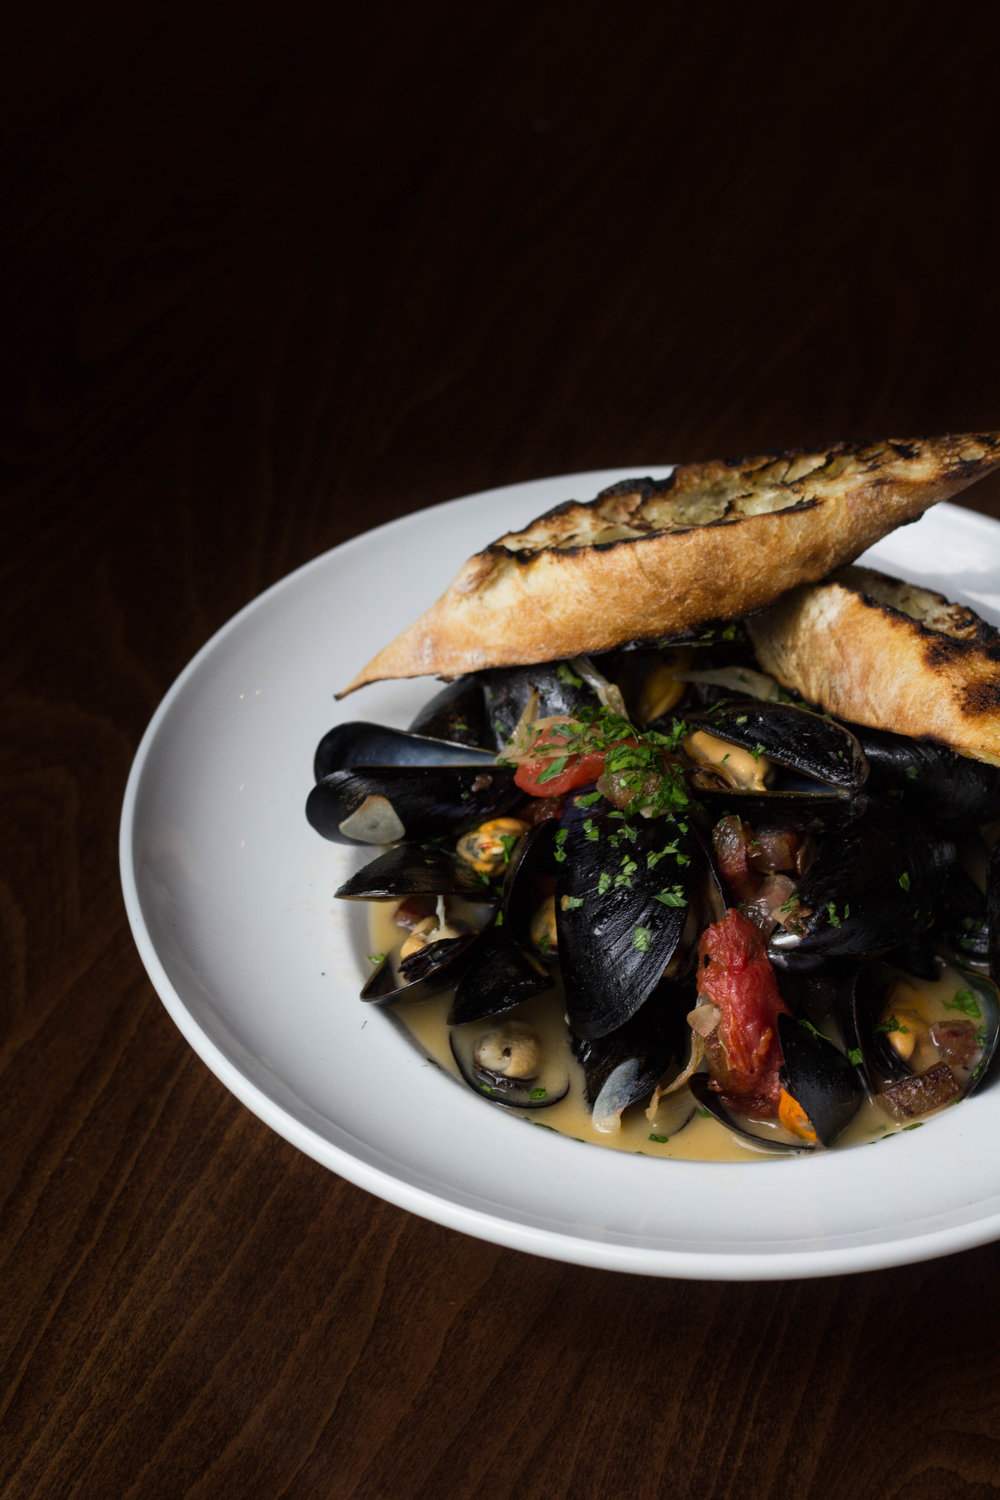 PKB-072017-LMH-Mussels-3.jpg